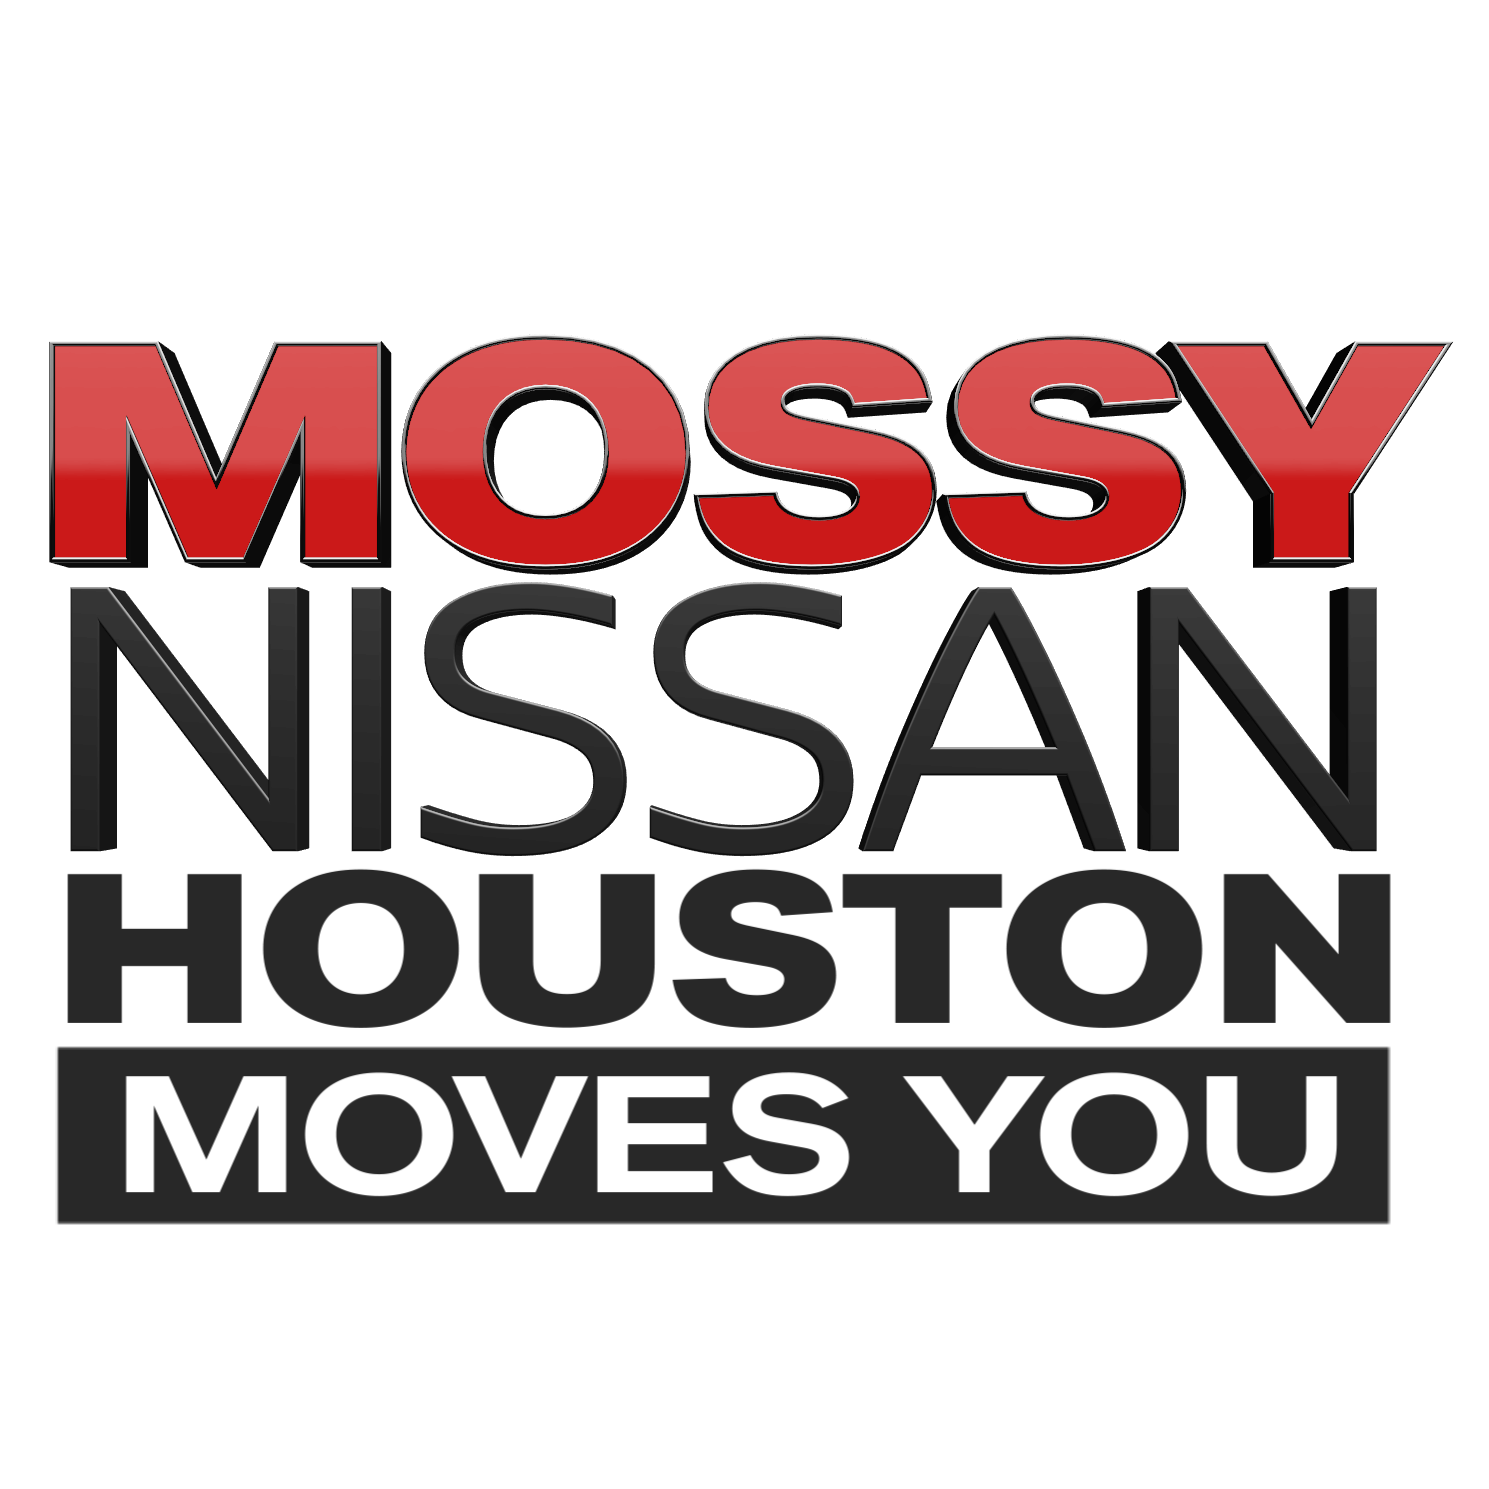 current in sentra nissan houston htm texas central tx specials new offers